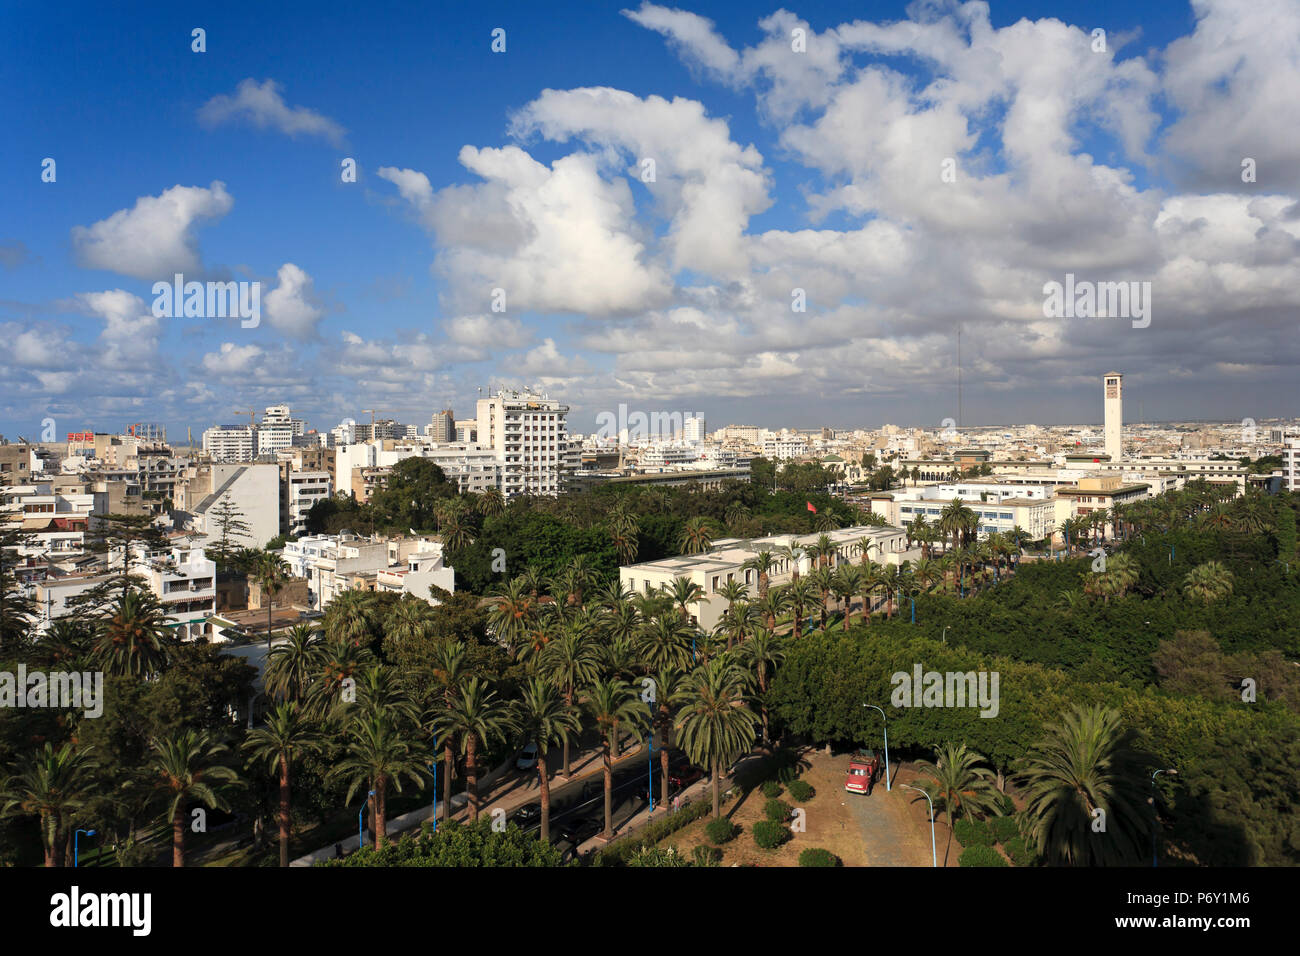 Maroc, Casablanca Photo Stock